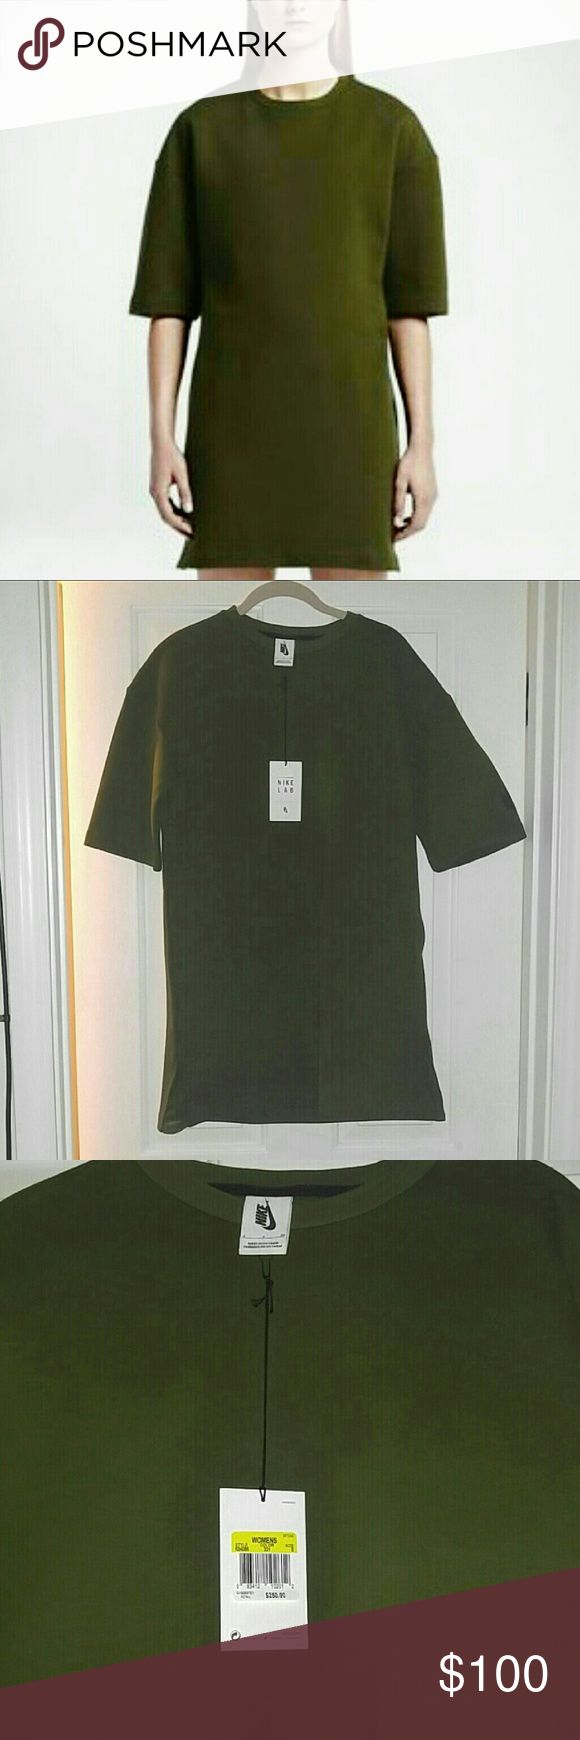 NIKE NIKELAB TECH FLEECE DRESS This is New with tag in olive green. Short sleeve. Stops above knee or mid thigh depending on height Nike Dresses